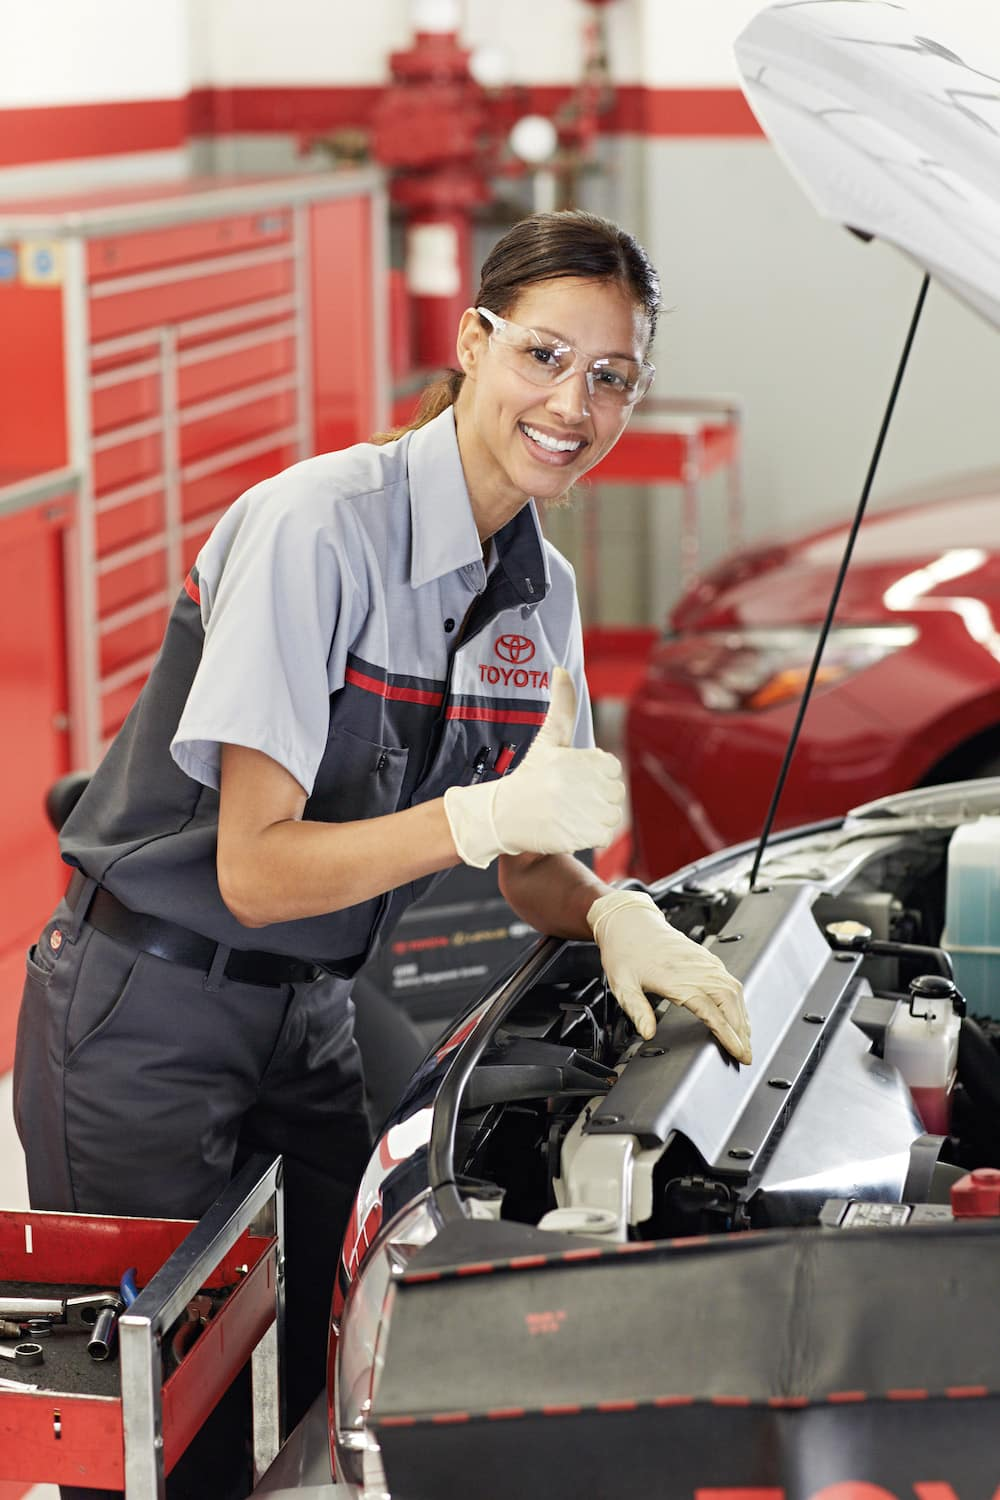 3 Main Benefits of Using OEM parts for your vehicle at Lancaster Toyota of East Petersburg | Toyota technicians smiling